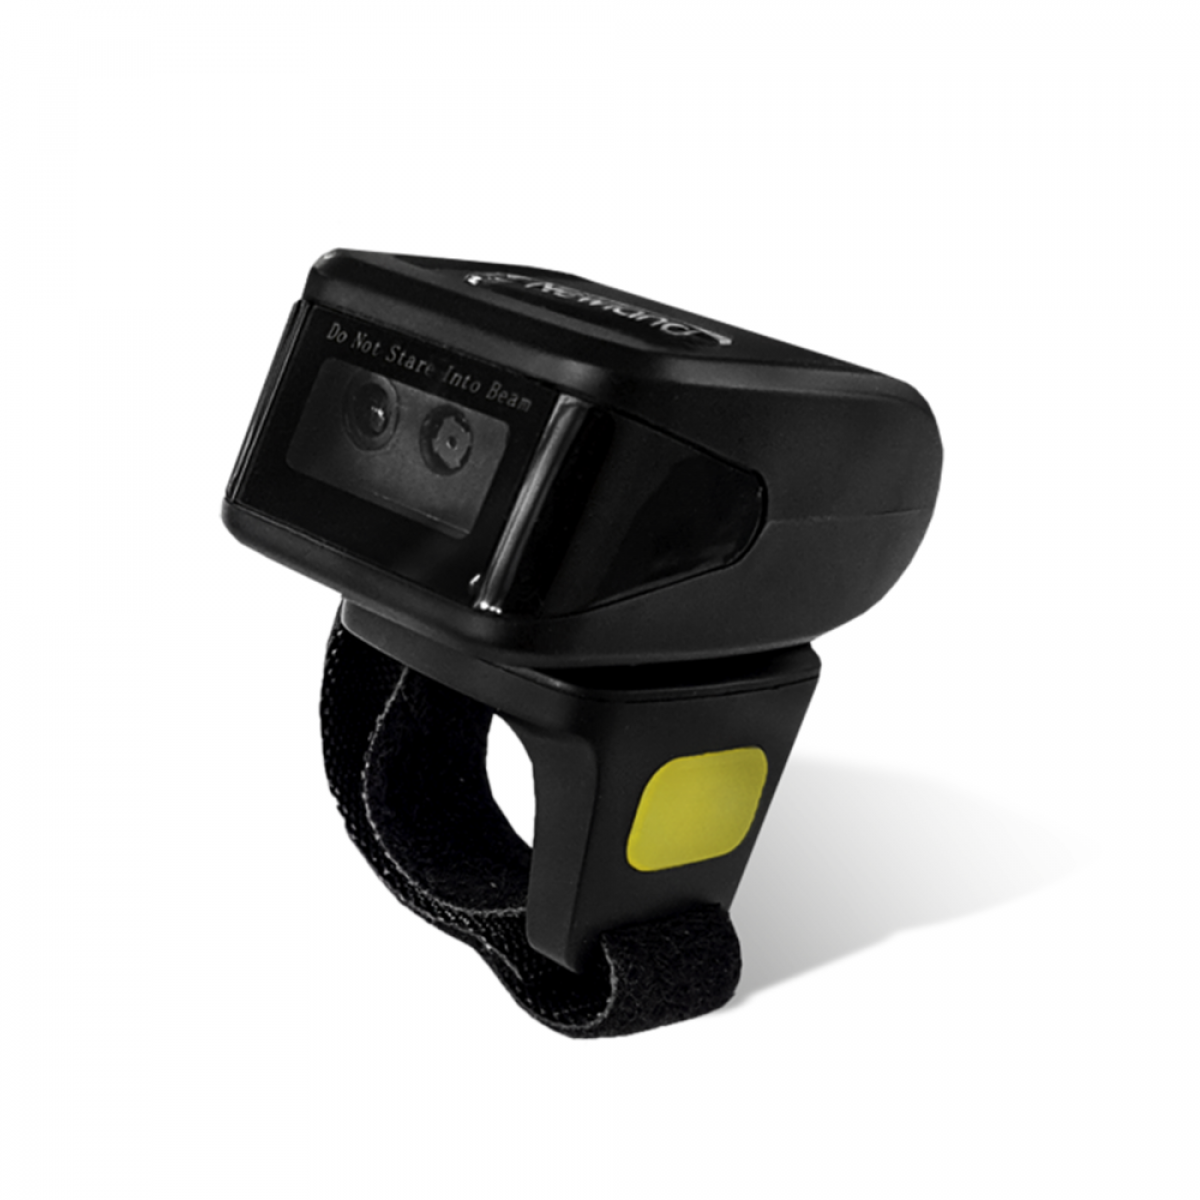 Newland BS10R Sepia hands free ring scanner